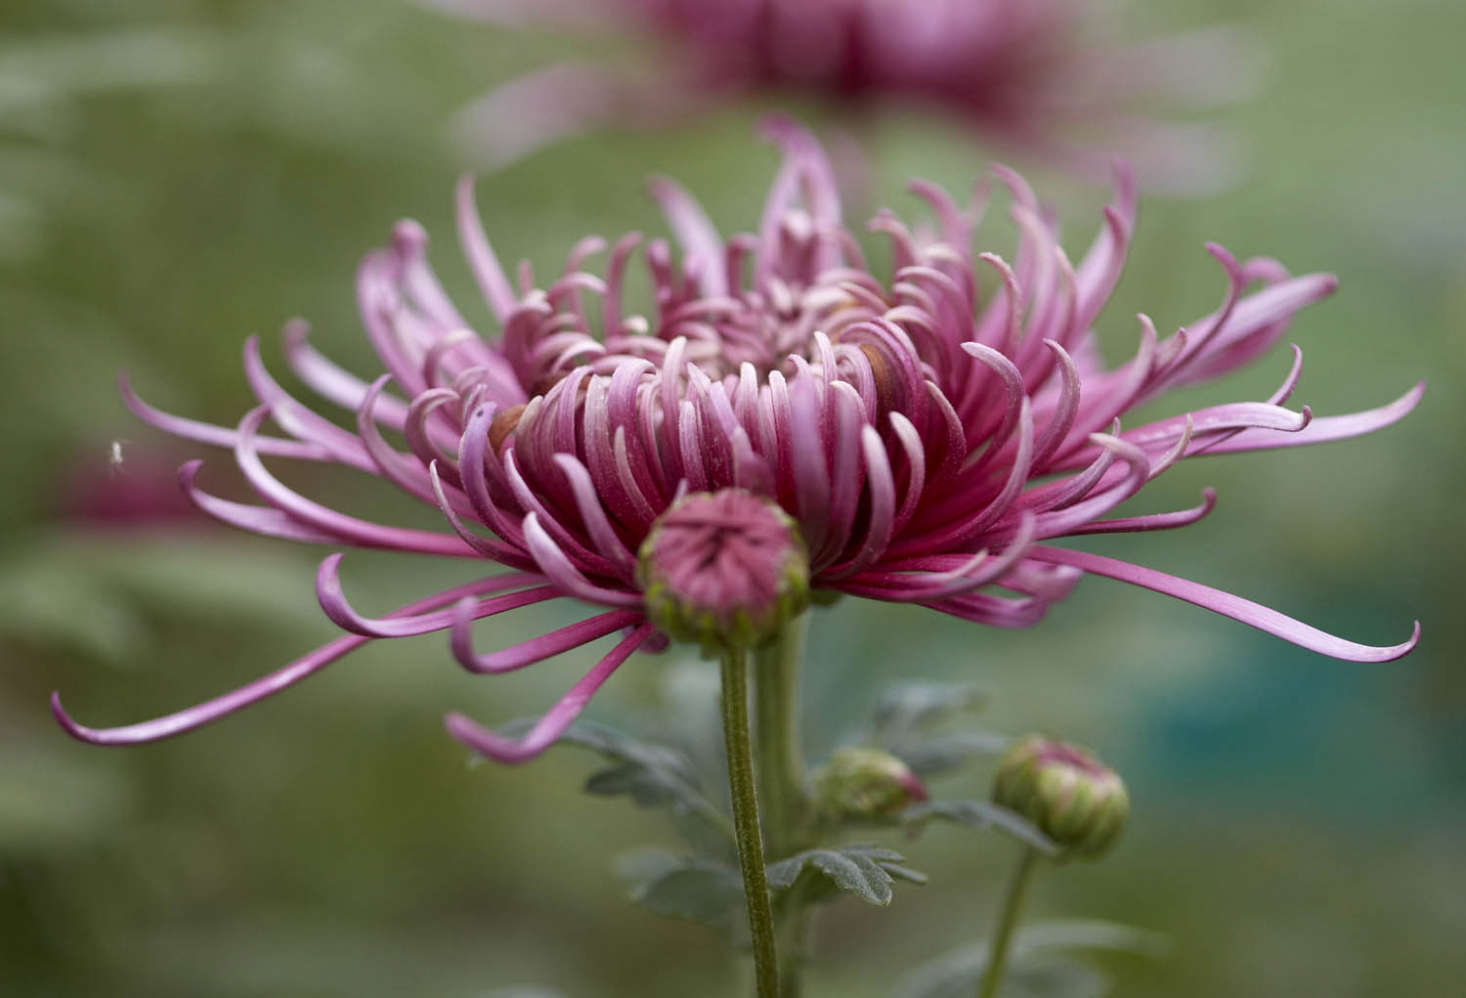 Spider chrysanthemum 'Saratox Lilac' is in bloom in the garden at Bayntun Flowers. See more at Chrysanthemums: Rethinking a Fast-Food Flower. Photograph by Britt Willoughby Dyer.